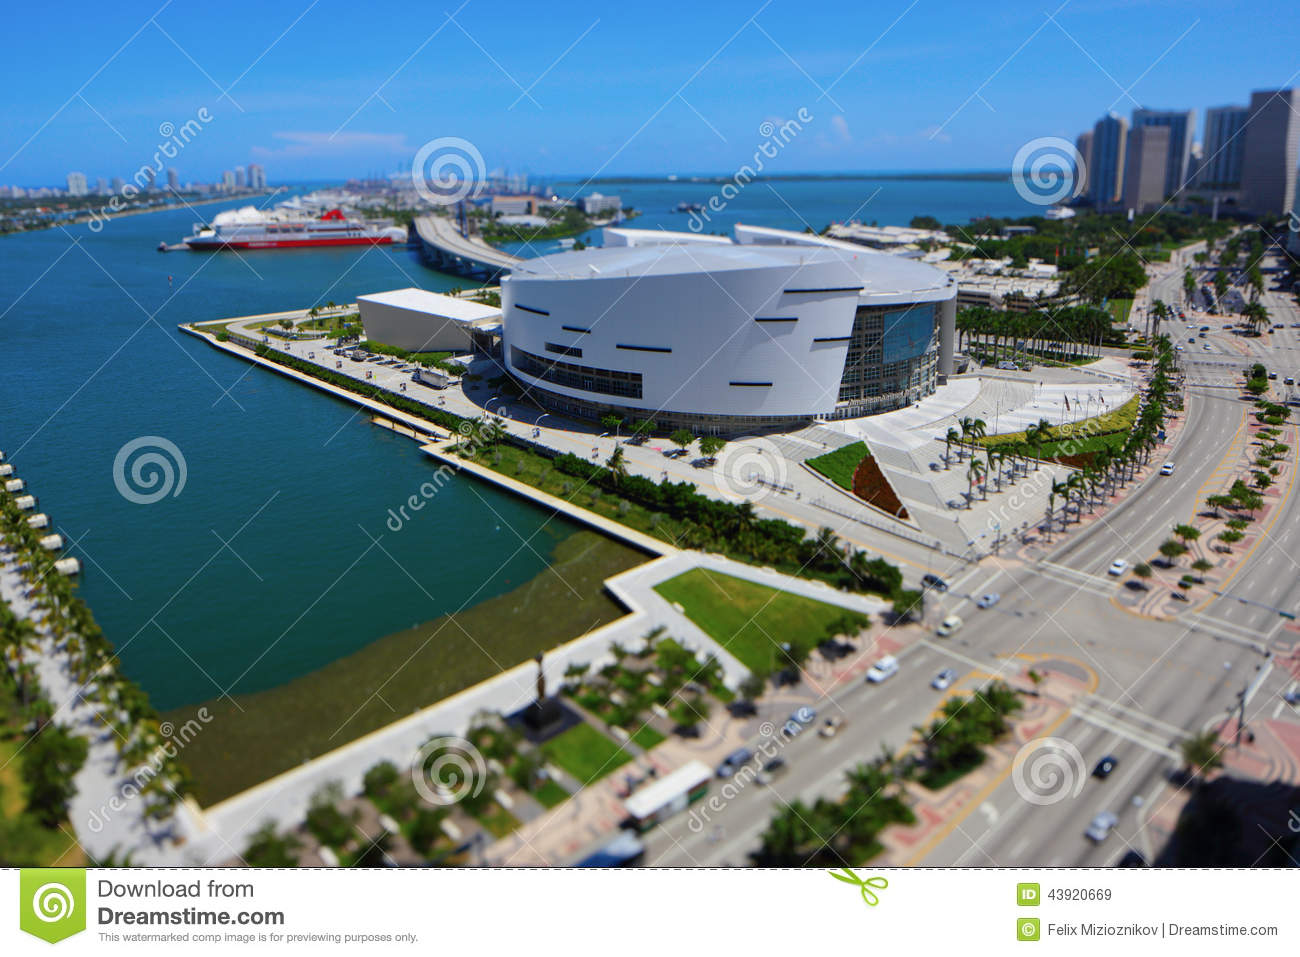 how to get to american airlines arena